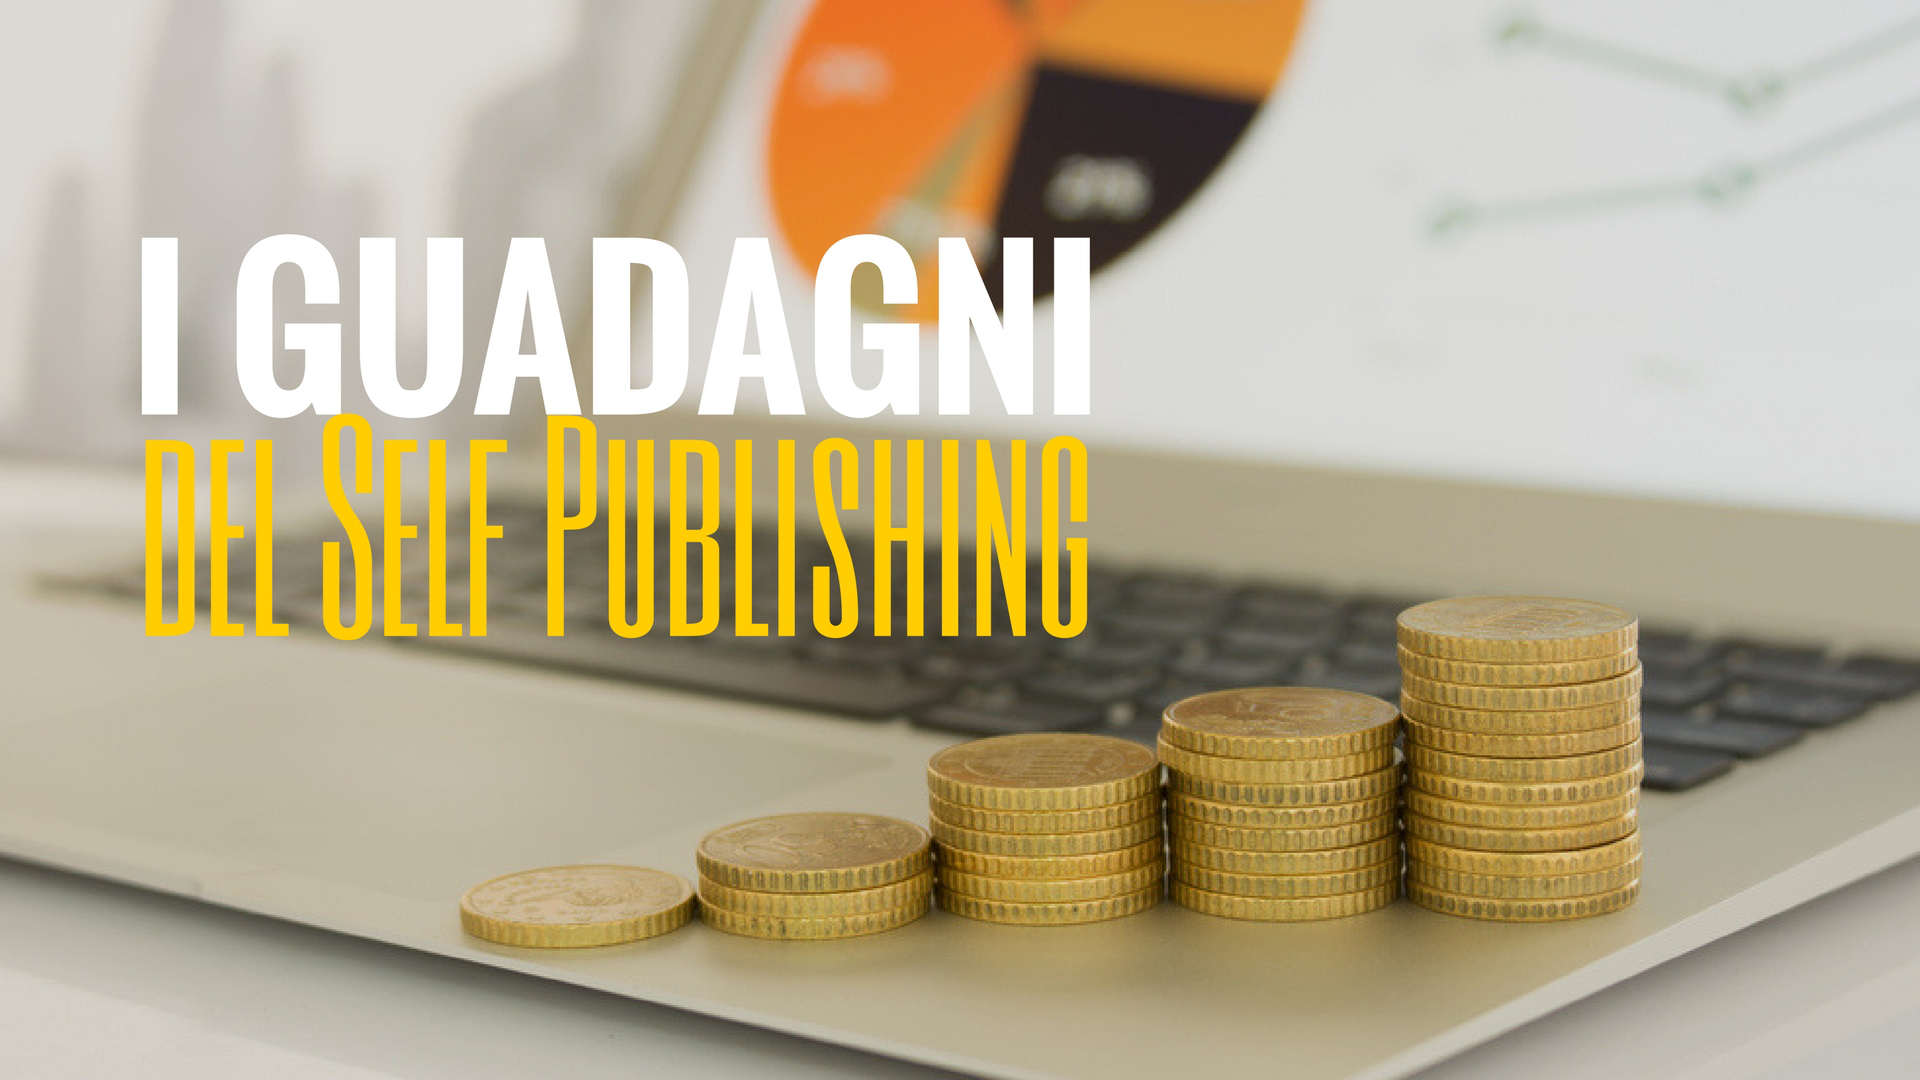 guadagni del self publishing